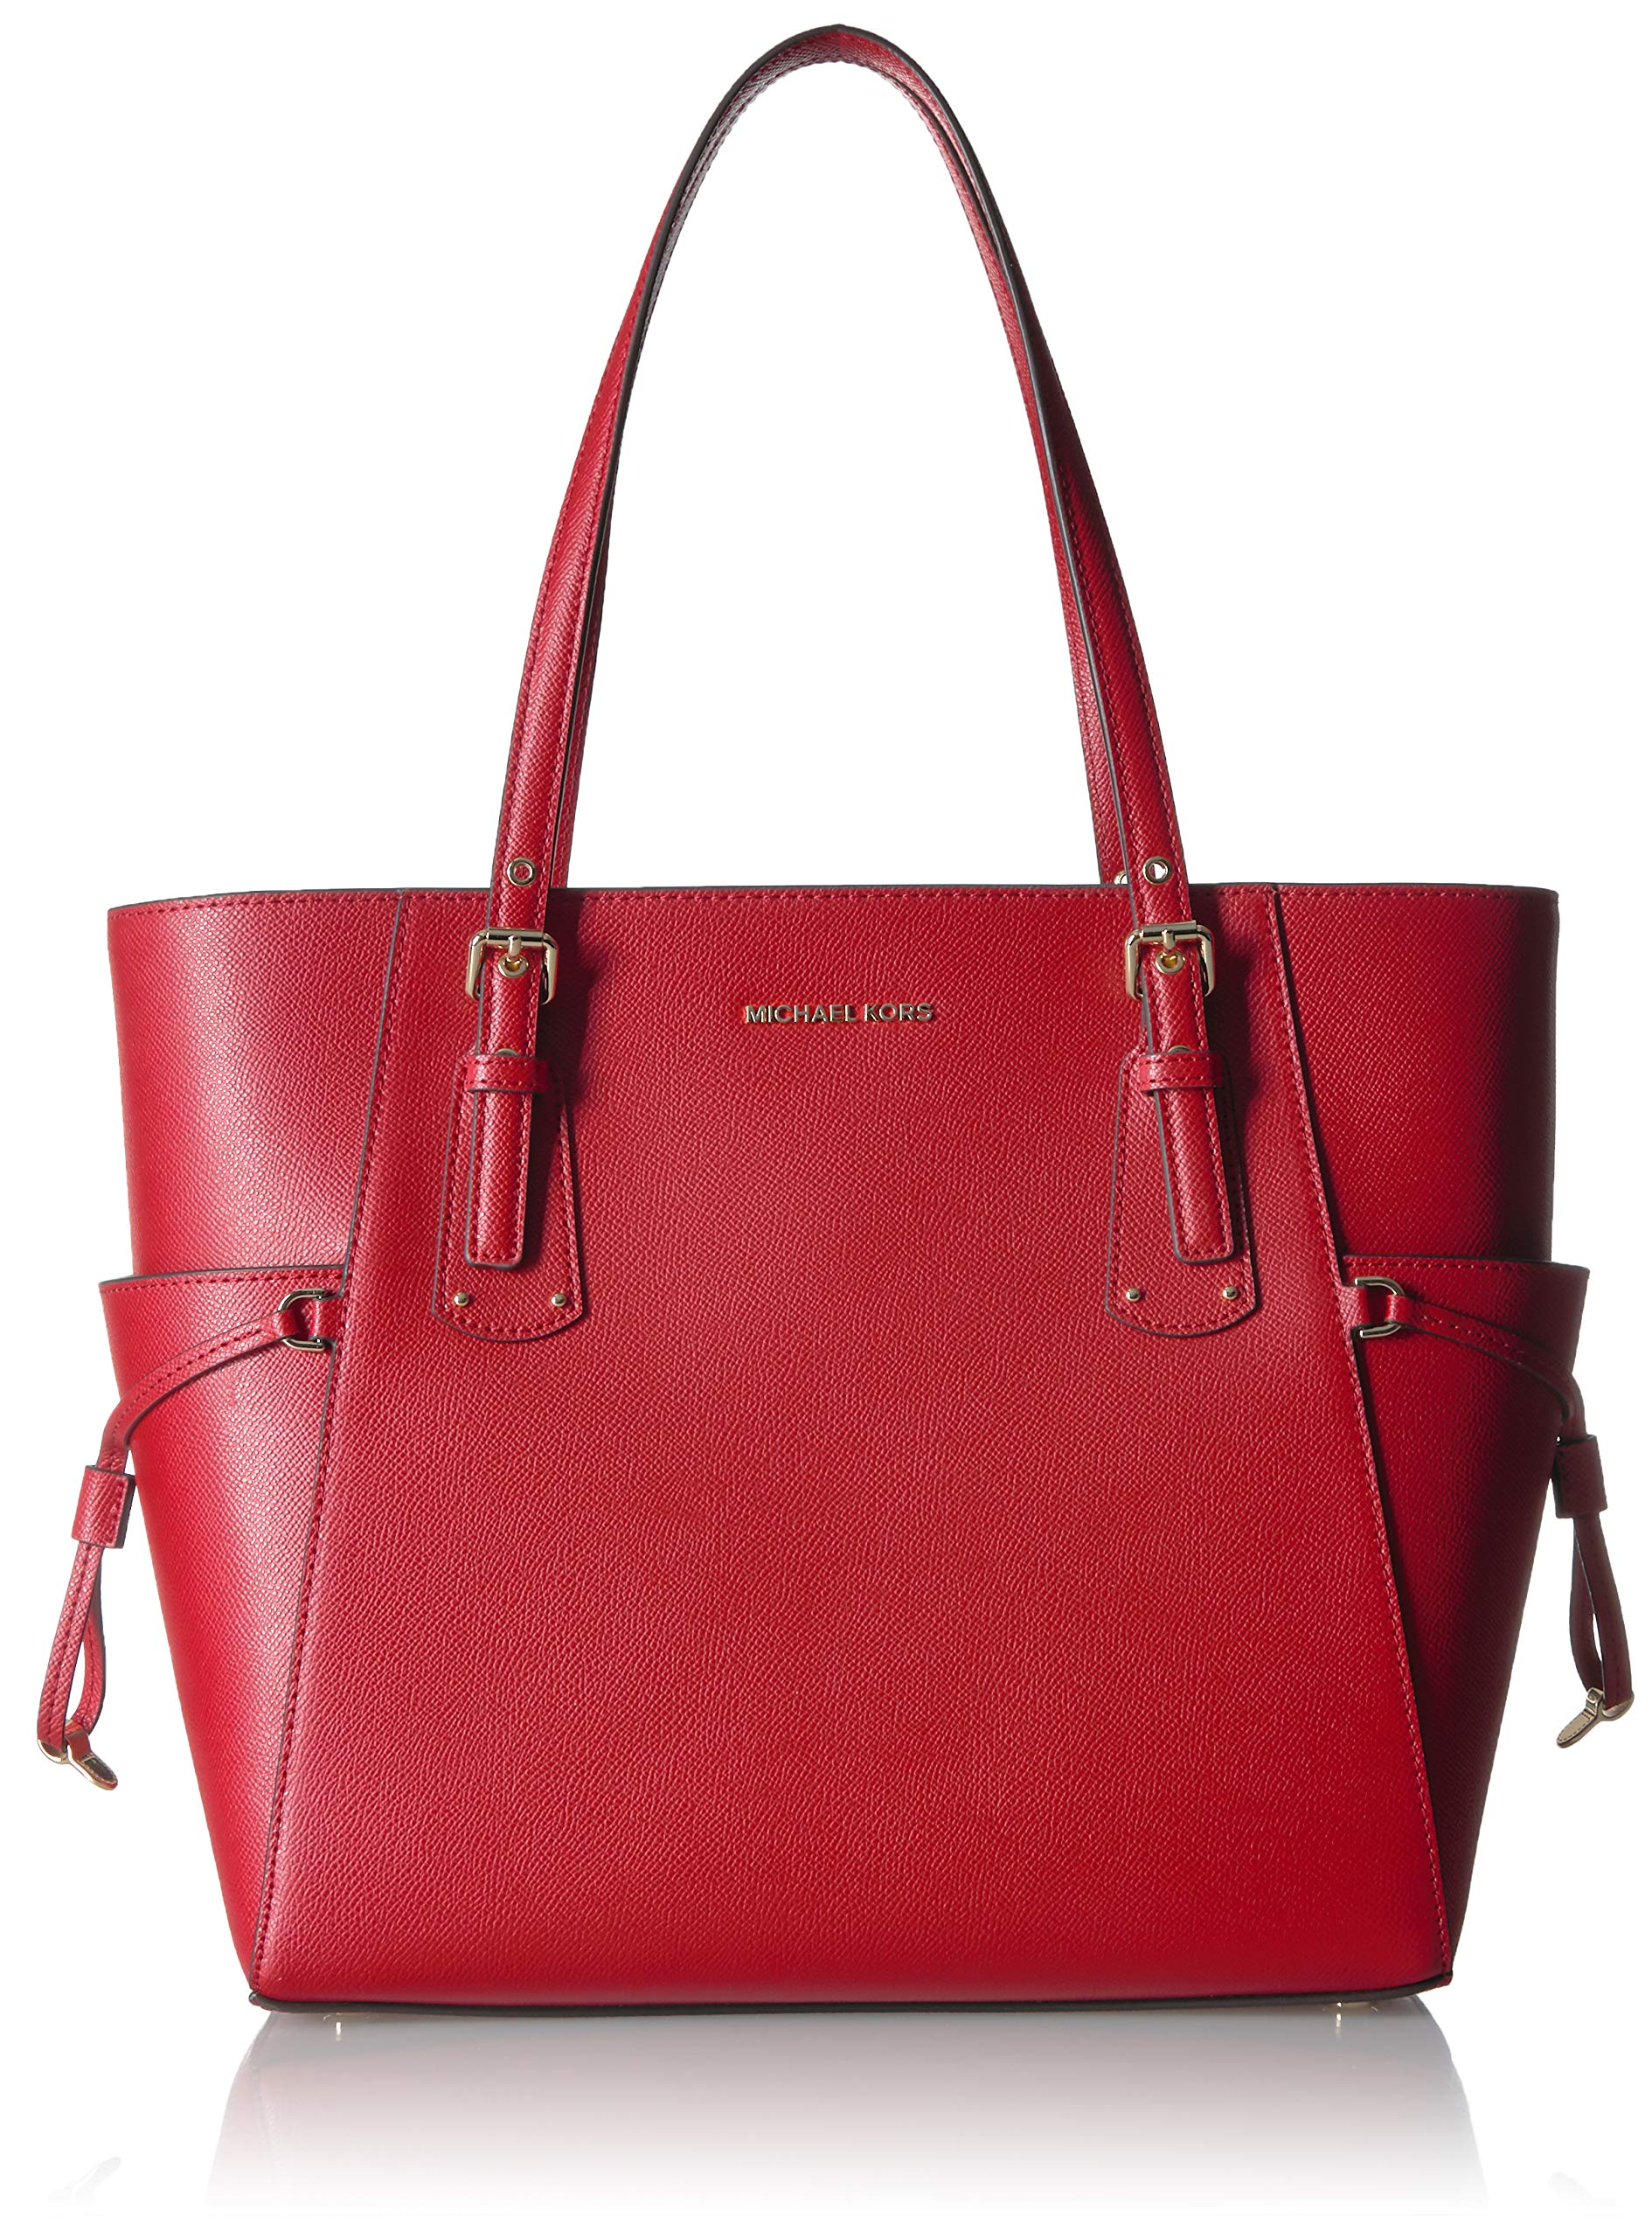 Michael Kors Voyager East West Leather Tote Handbag in Bright Red